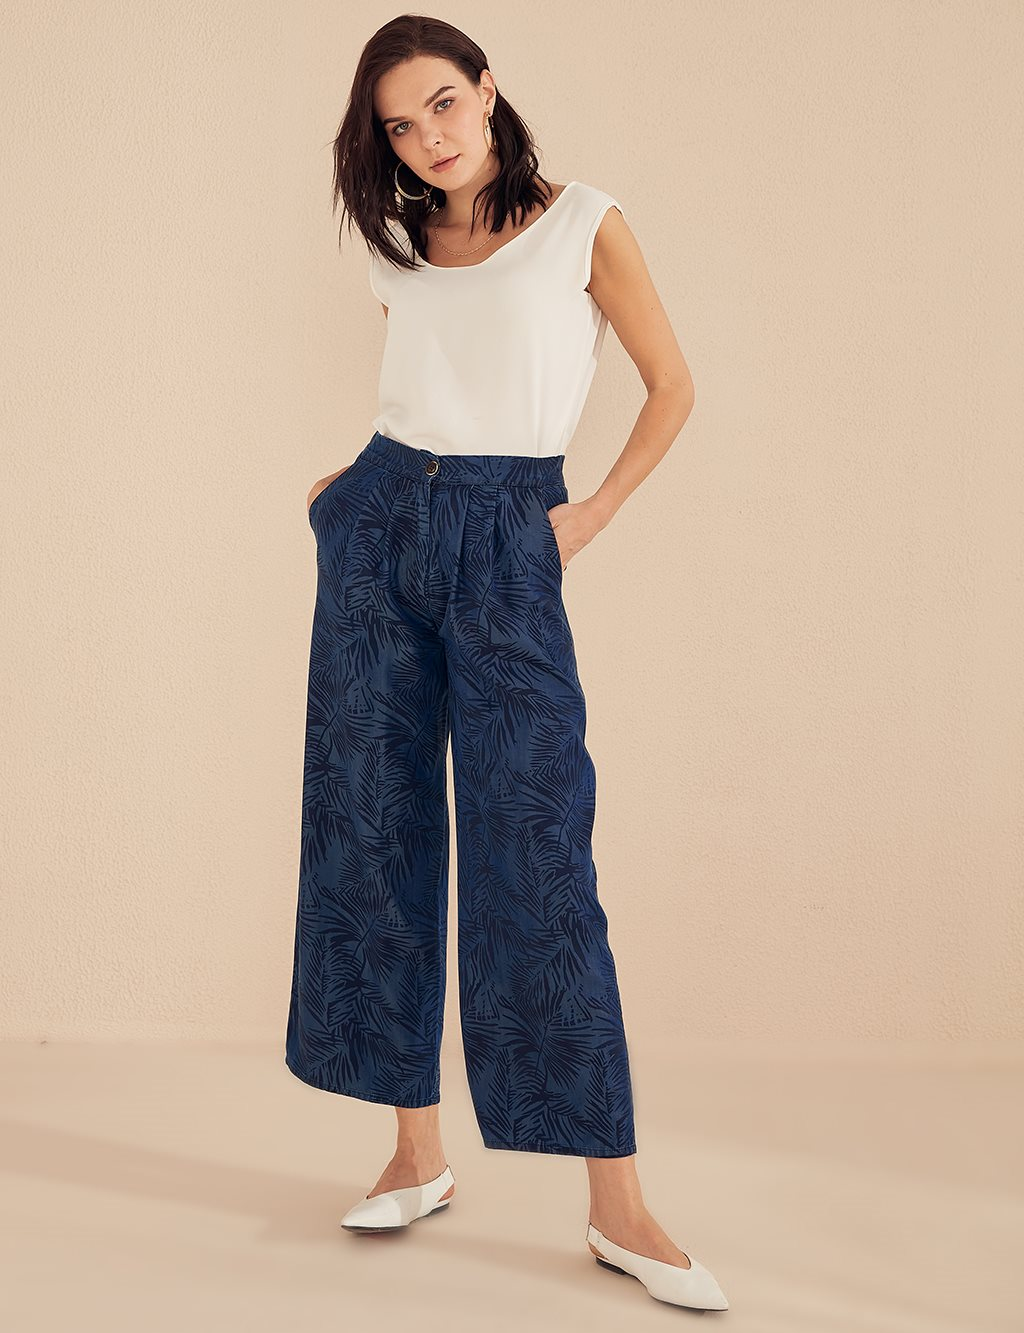 Oversize Tencel Pants B20 19188 Navy